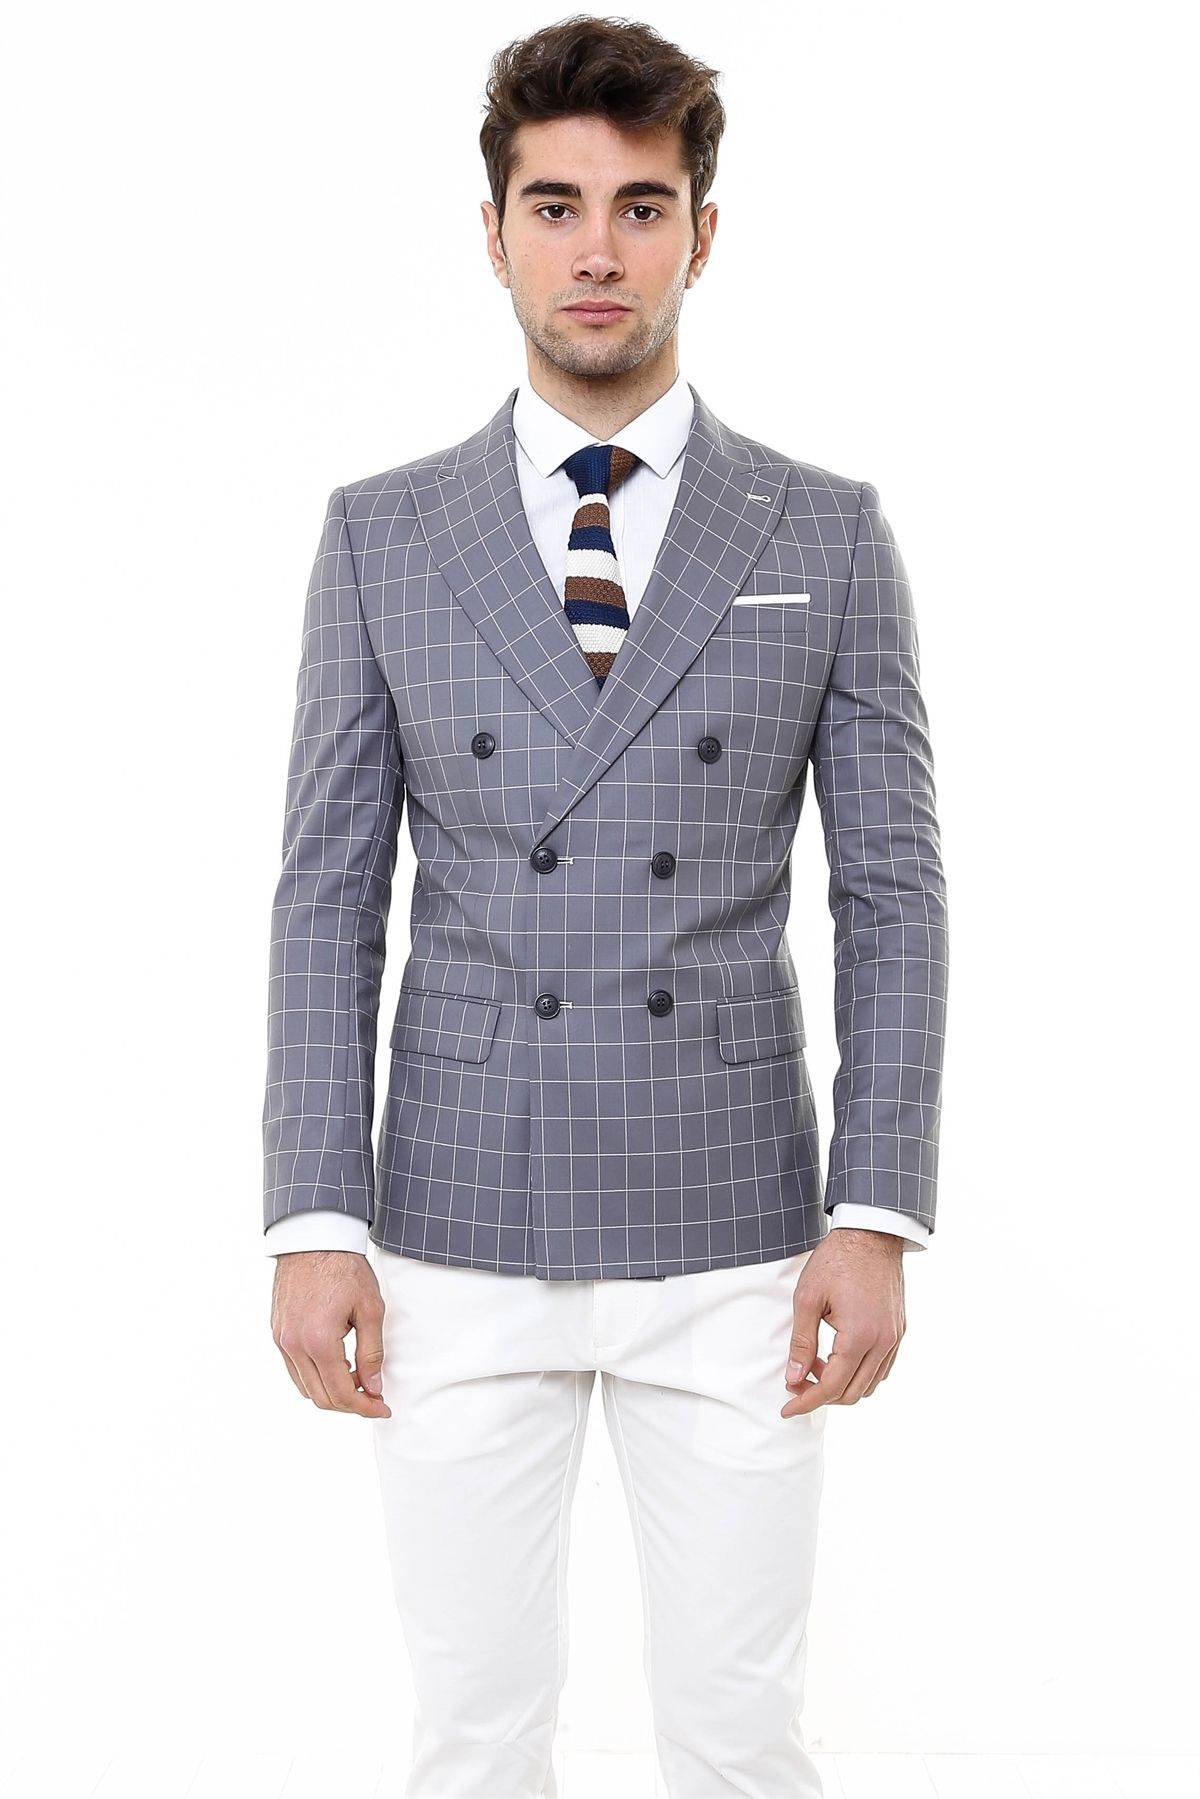 Wessi Double Breasted Combination Plaid Suit | Men's look ...